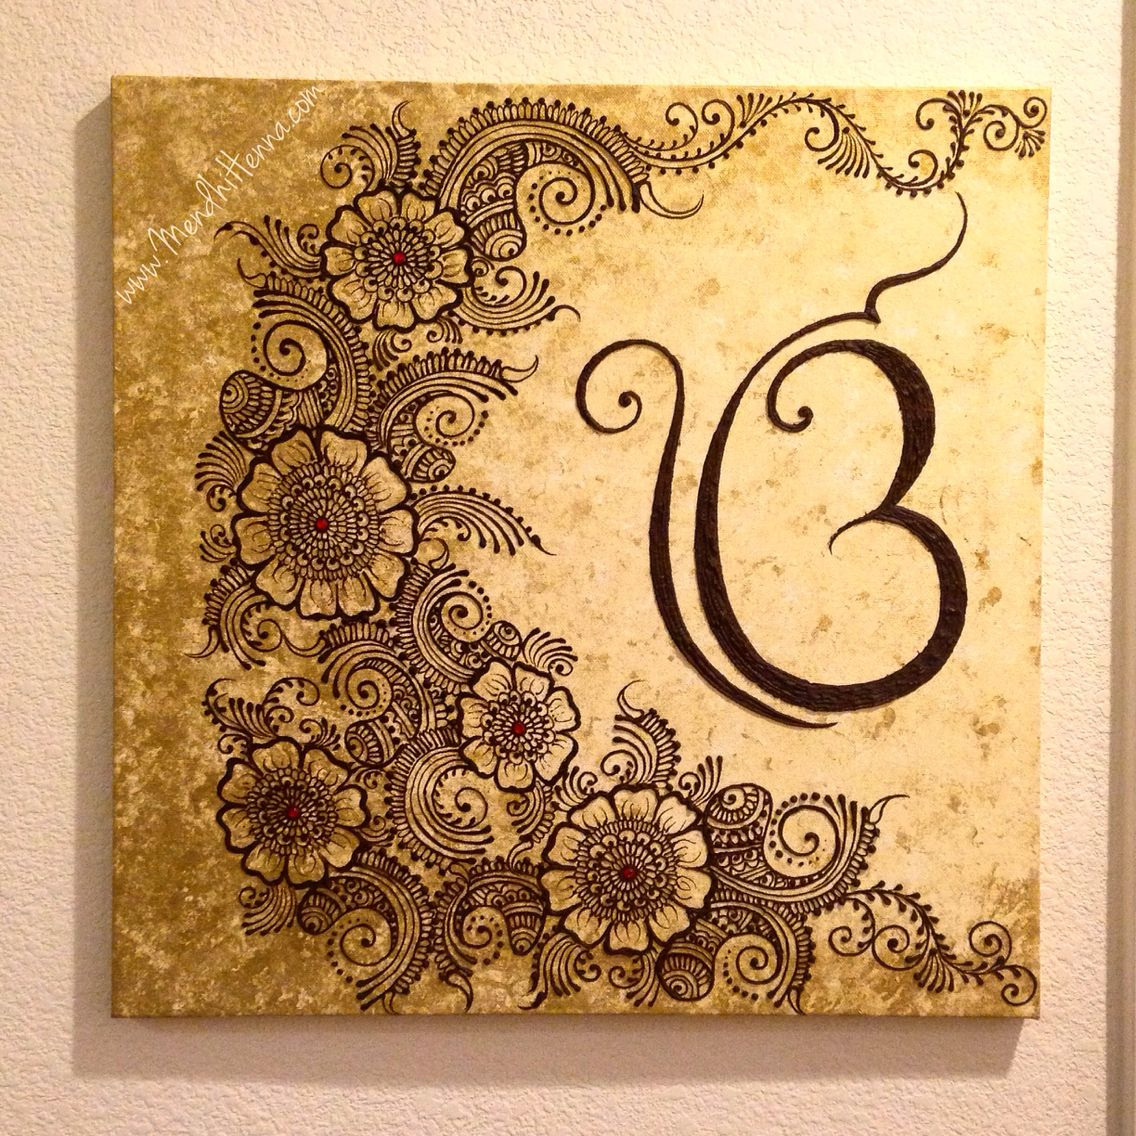 20x20 henna canvas wall decor www.MendhiHenna.com Instagram ...